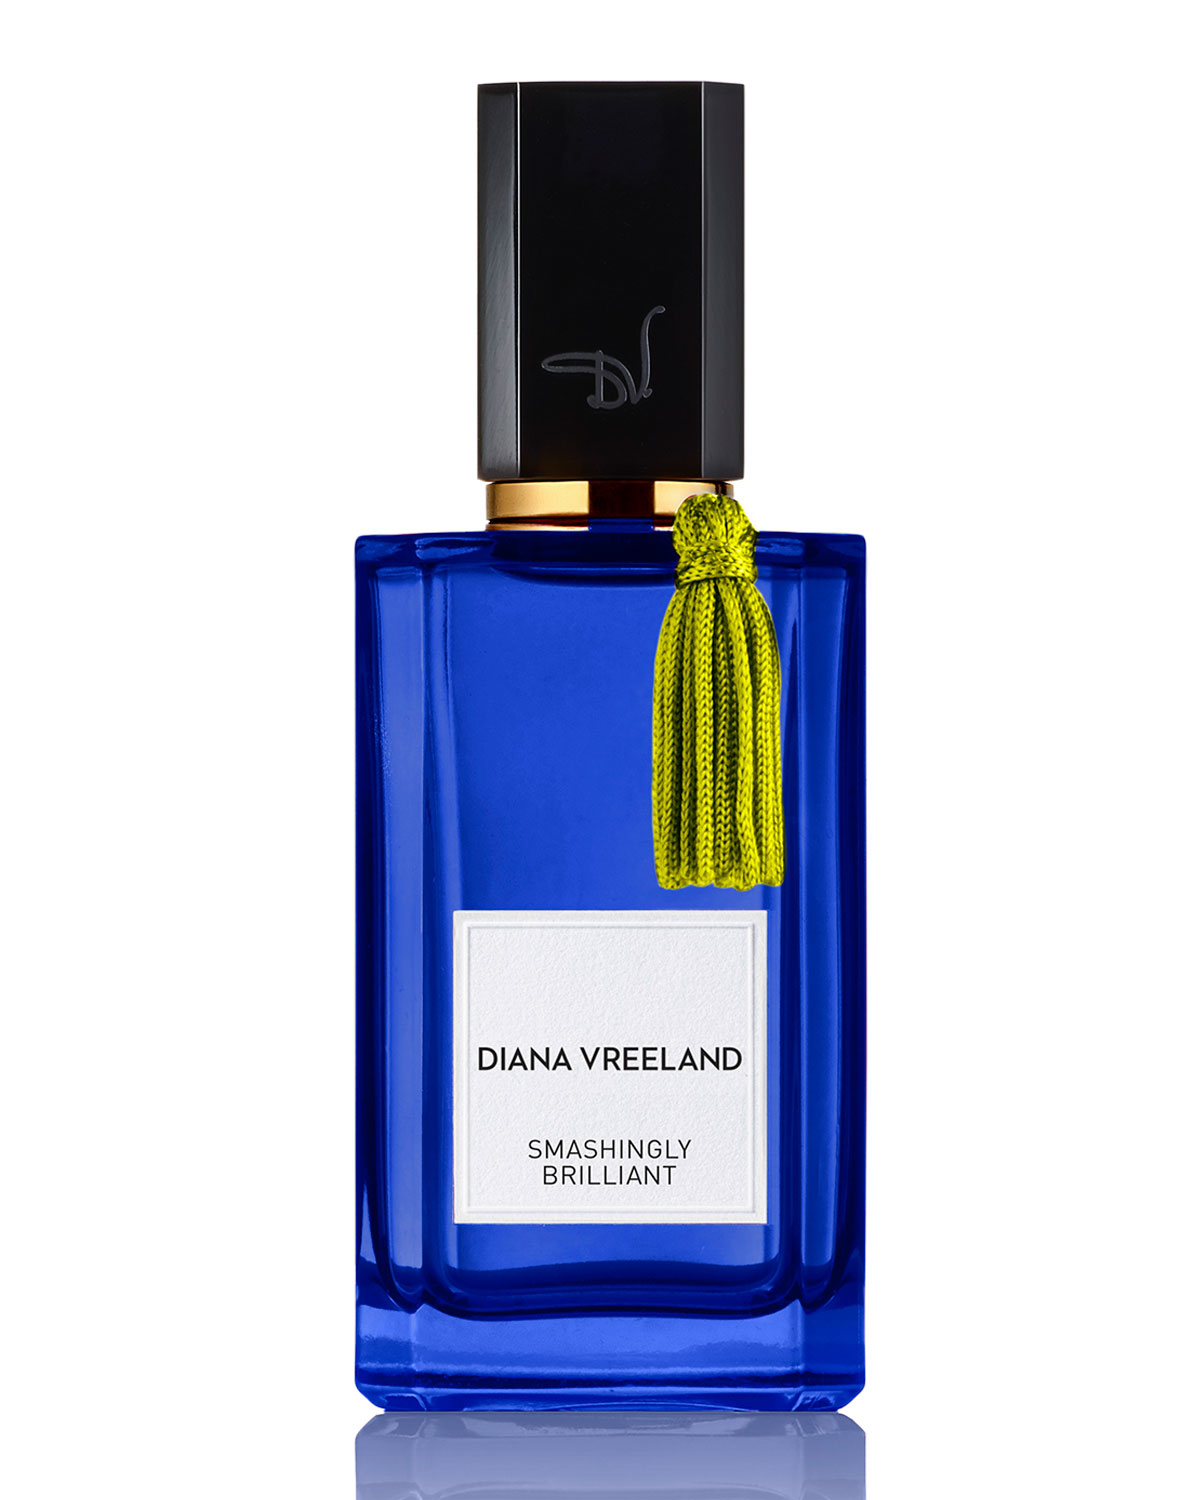 Smashingly Brilliant Eau de Parfum, 1.7 oz./ 50 mL